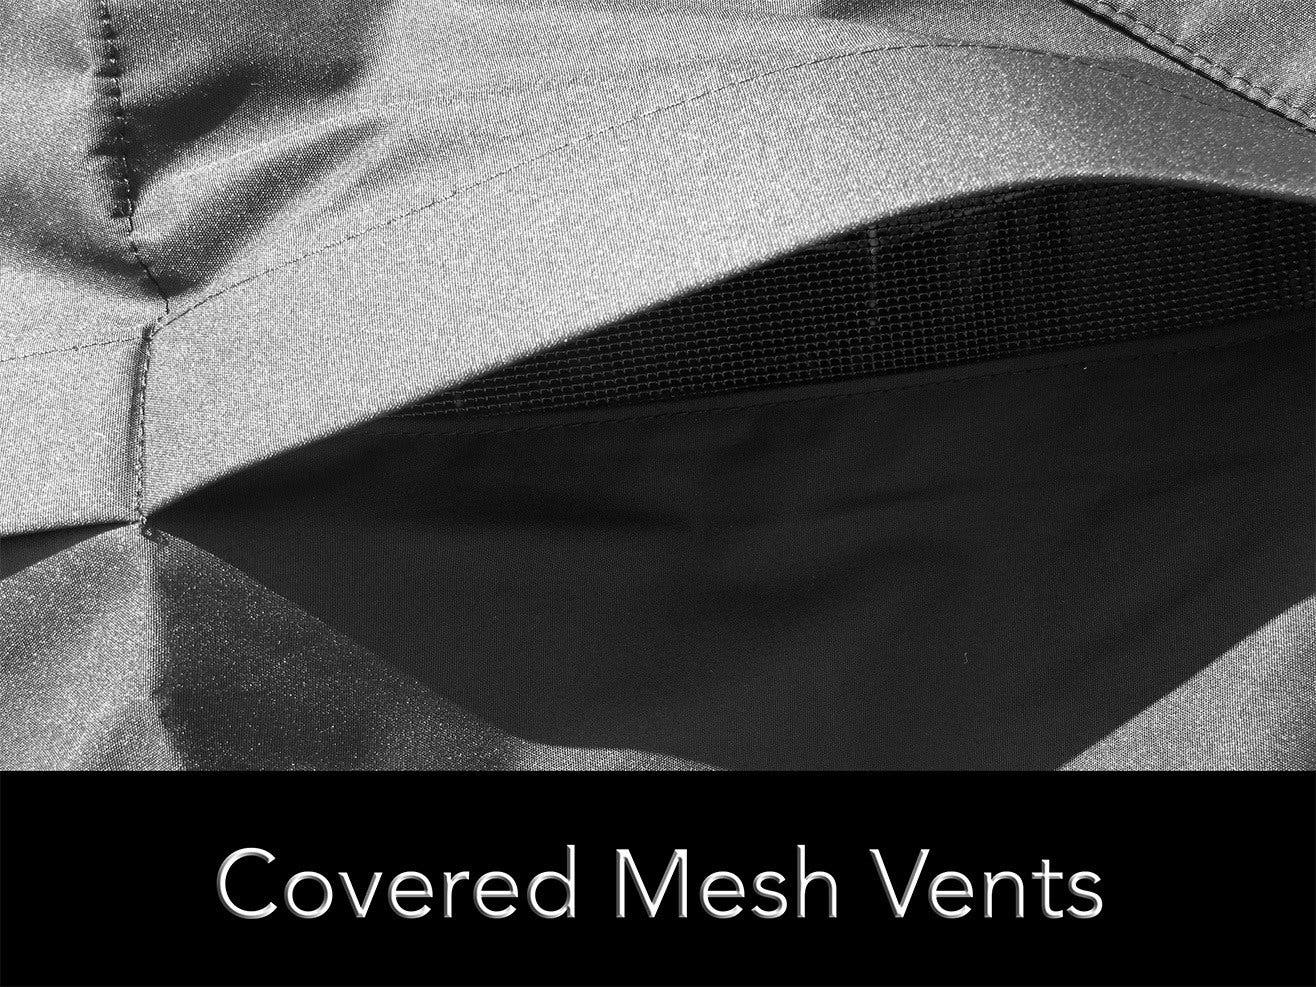 Covered mesh vents